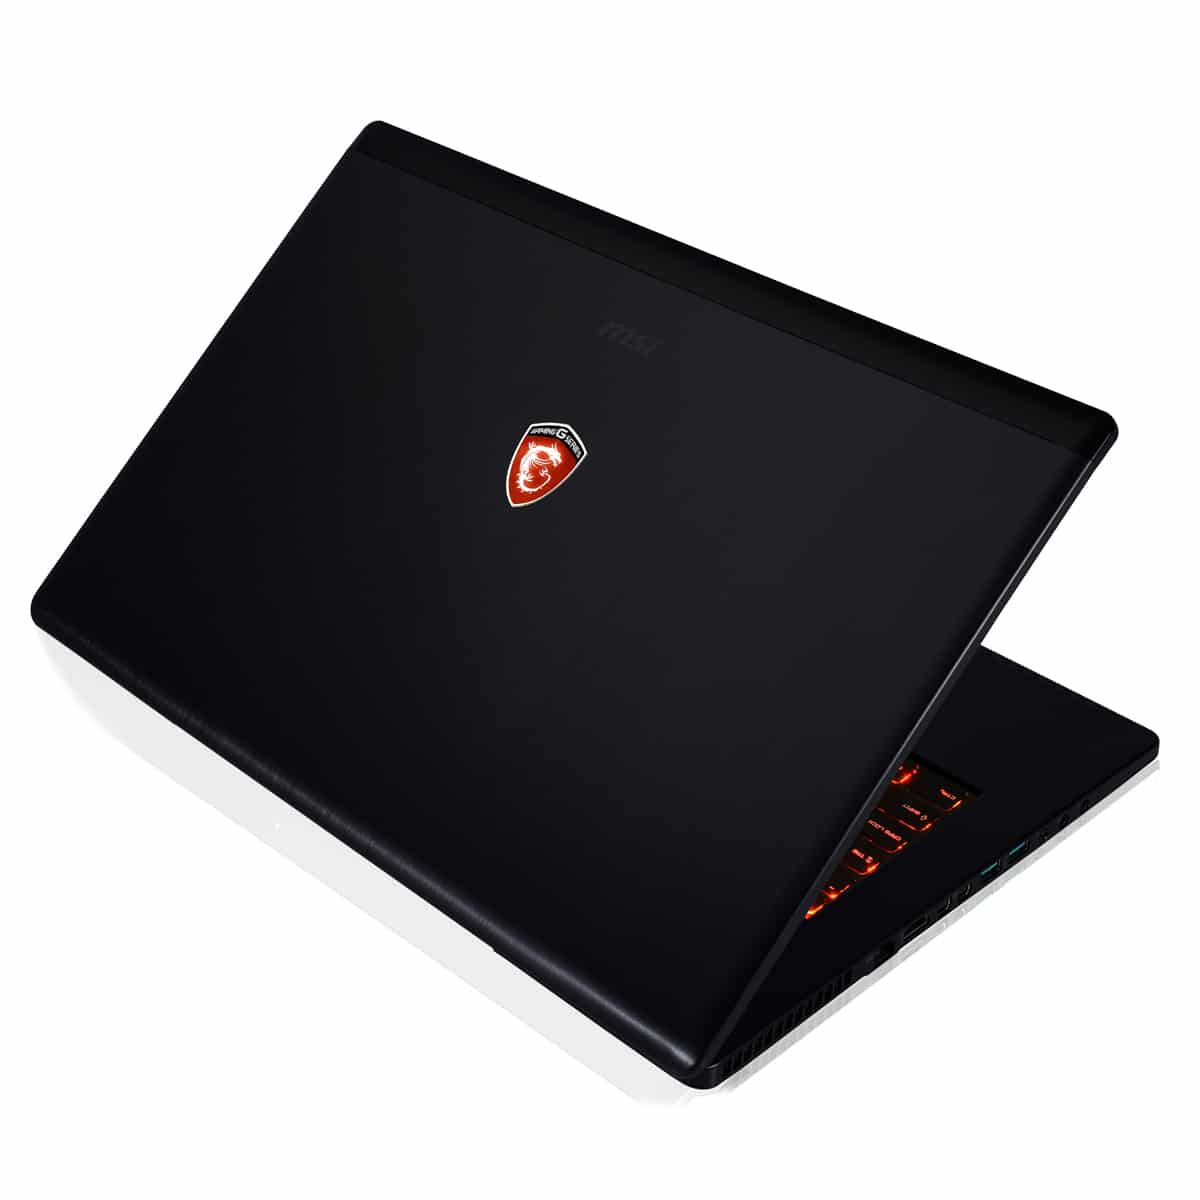 """MSI GS70 2OD-293, 17.3"""" Full HD mat sans OS : GTX 765M, Core i5 Haswell, 8 Go, SSD 128 Go+1 To 7200tr à 999€"""